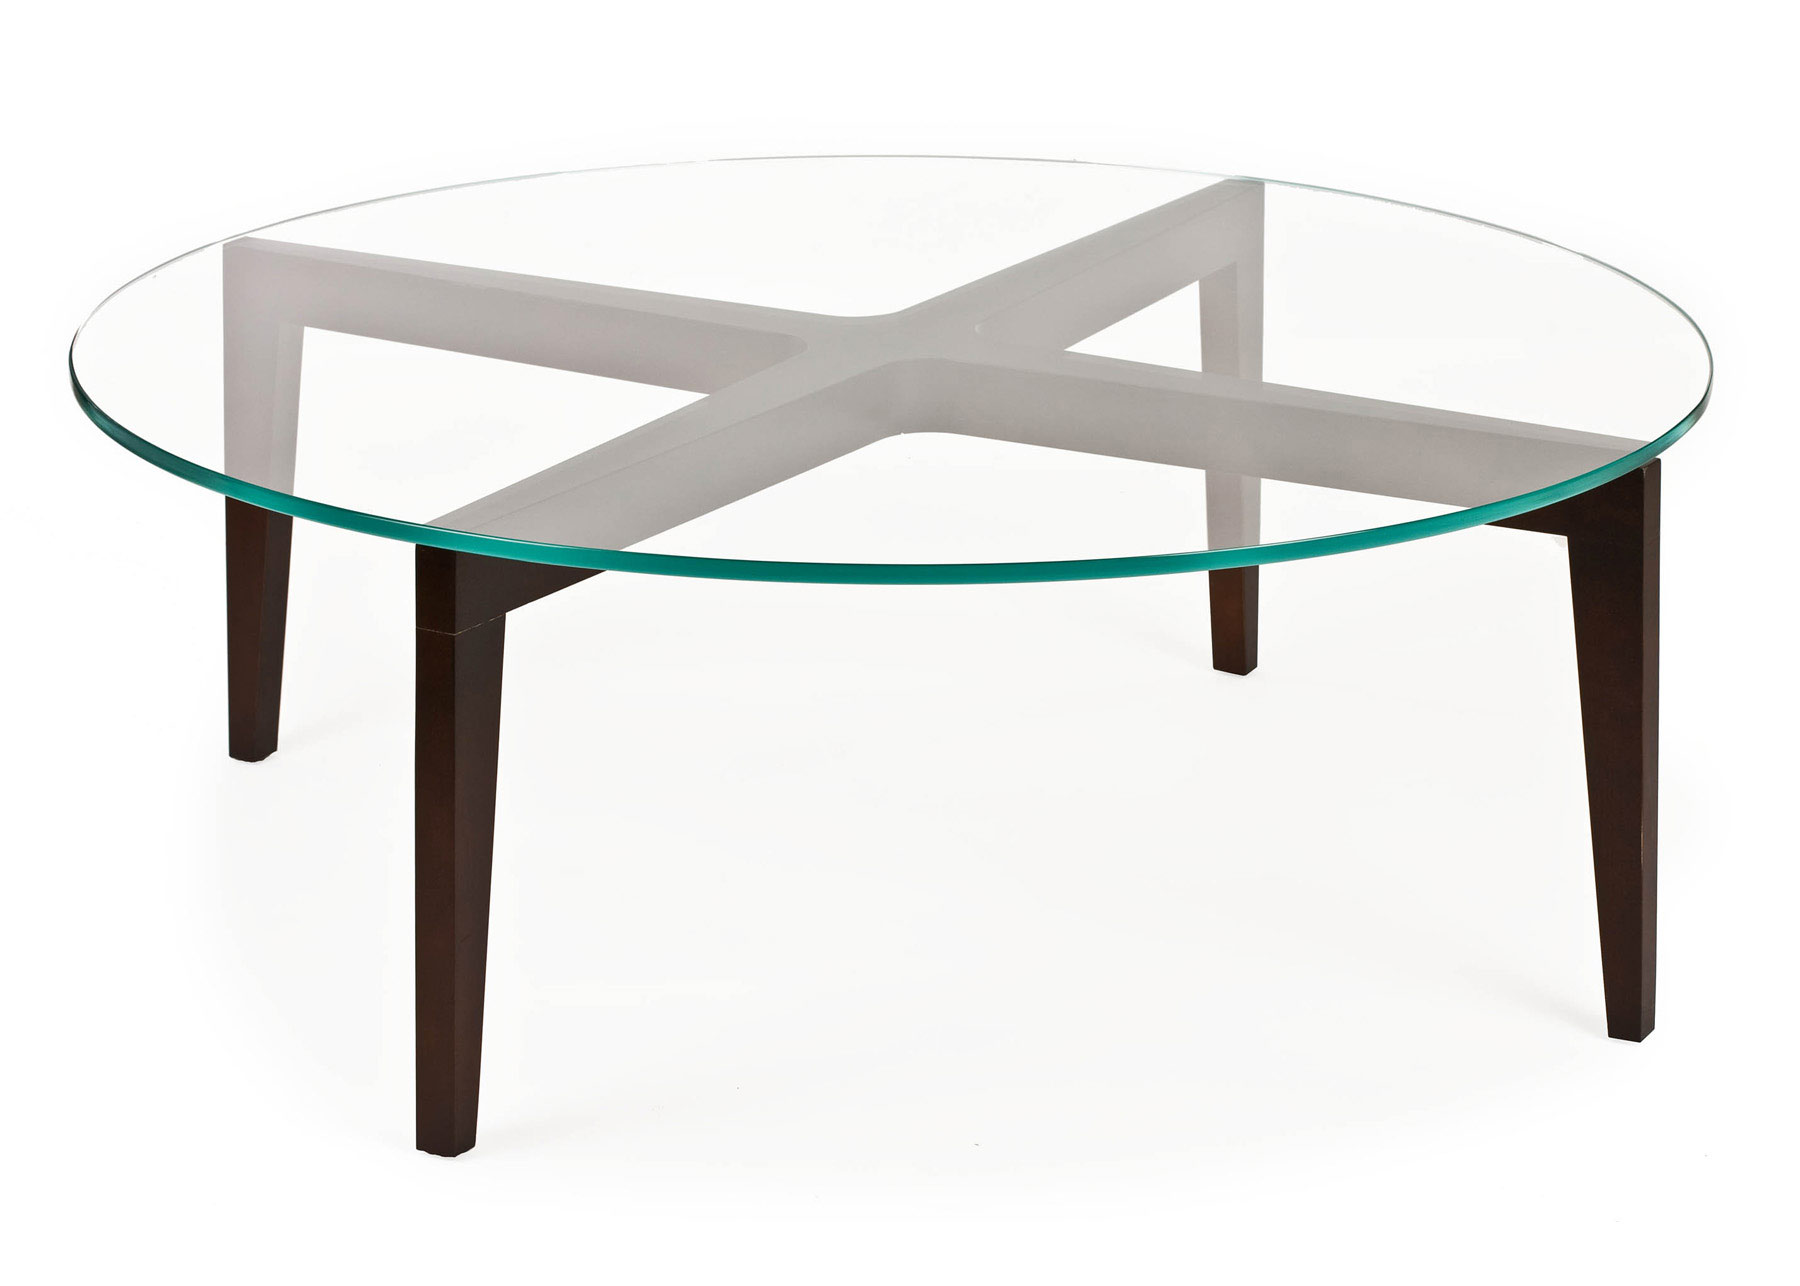 Base For Glass Coffee Table MOT56 Simple Elegance Wood Base Tables With Round Glass Tops End Table 20.5 H X 23 42 X 15 H In Glass Or Starfire Glass (Image 4 of 10)